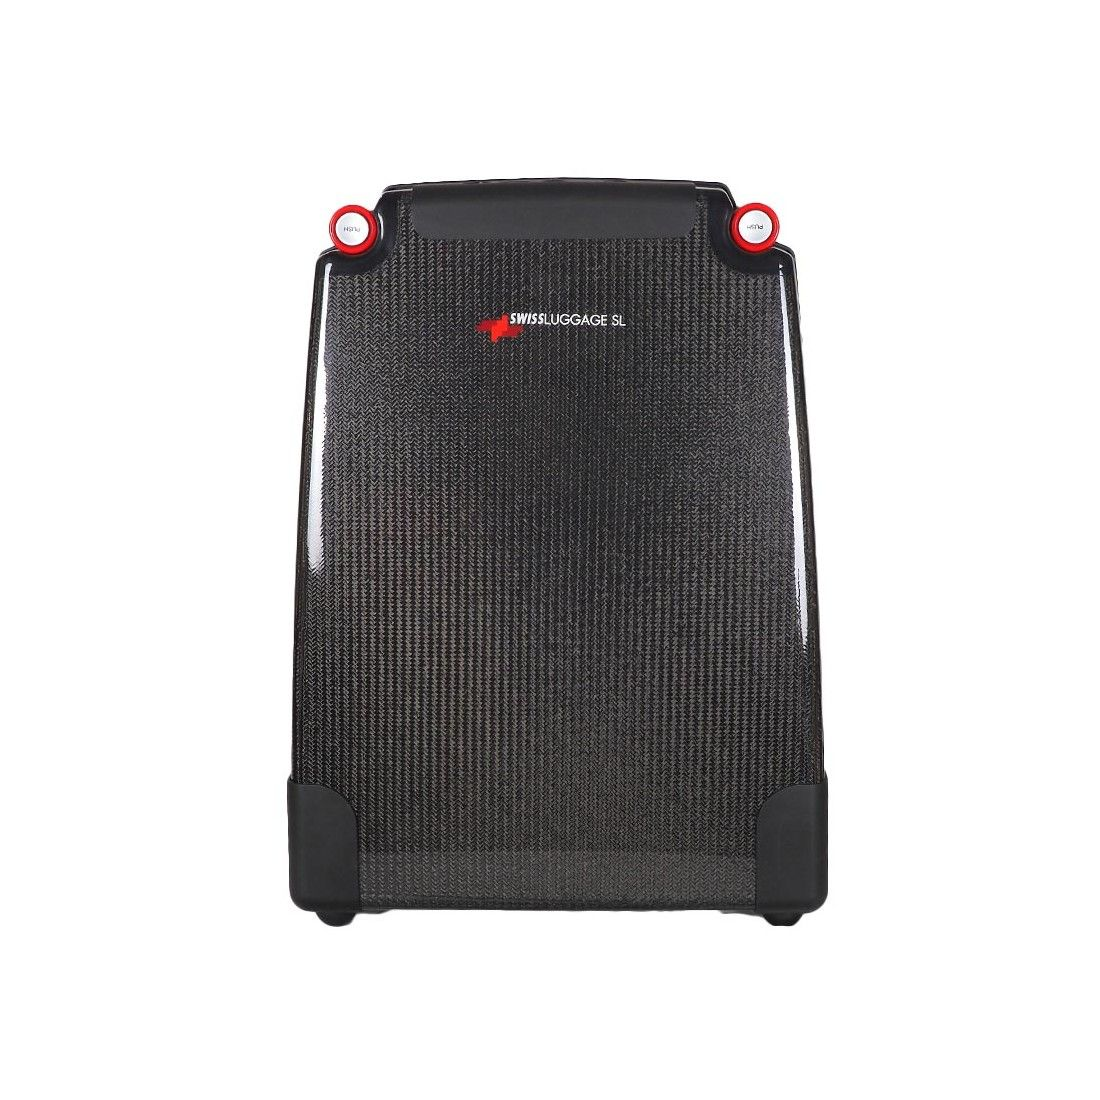 Maleta CARBON CARRY ON 5 - Swiss Luggage - 1